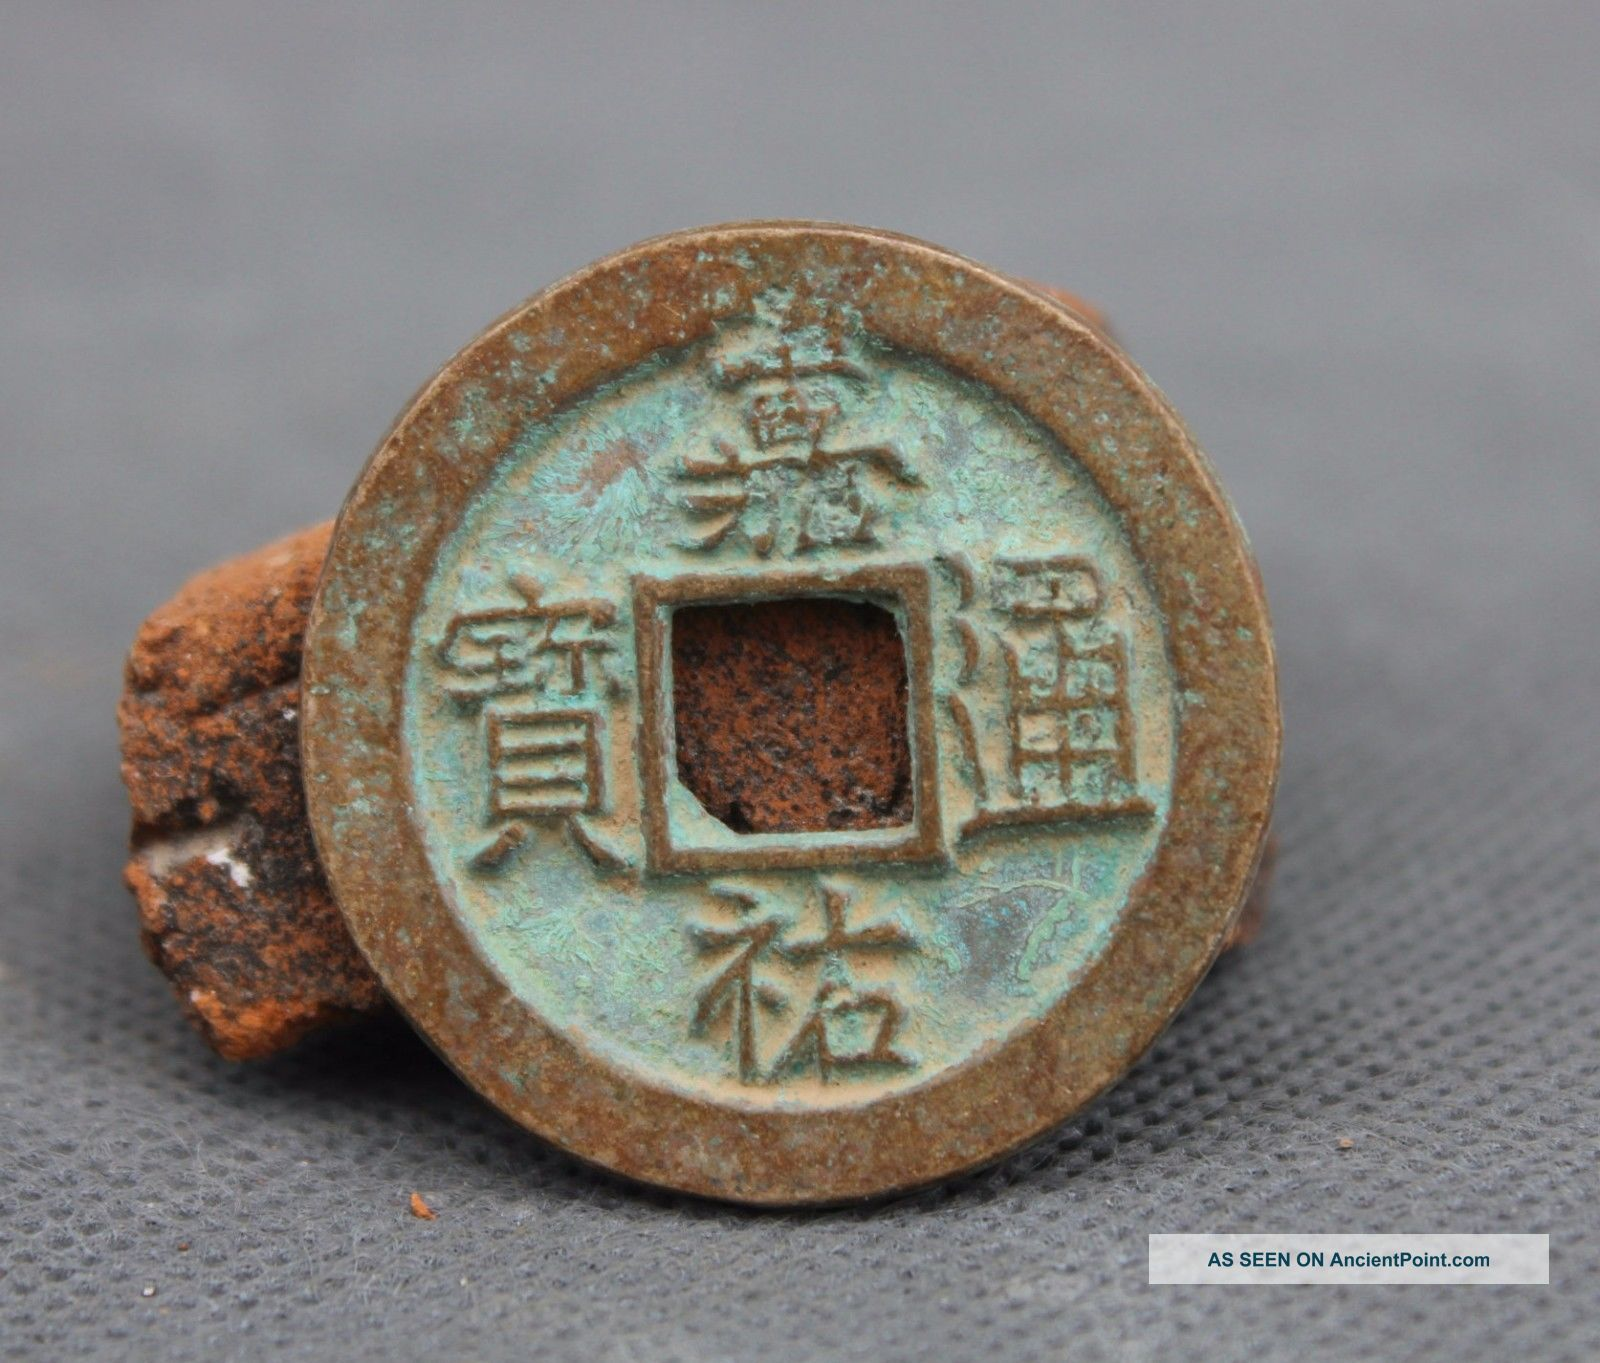 Chinese copper coin